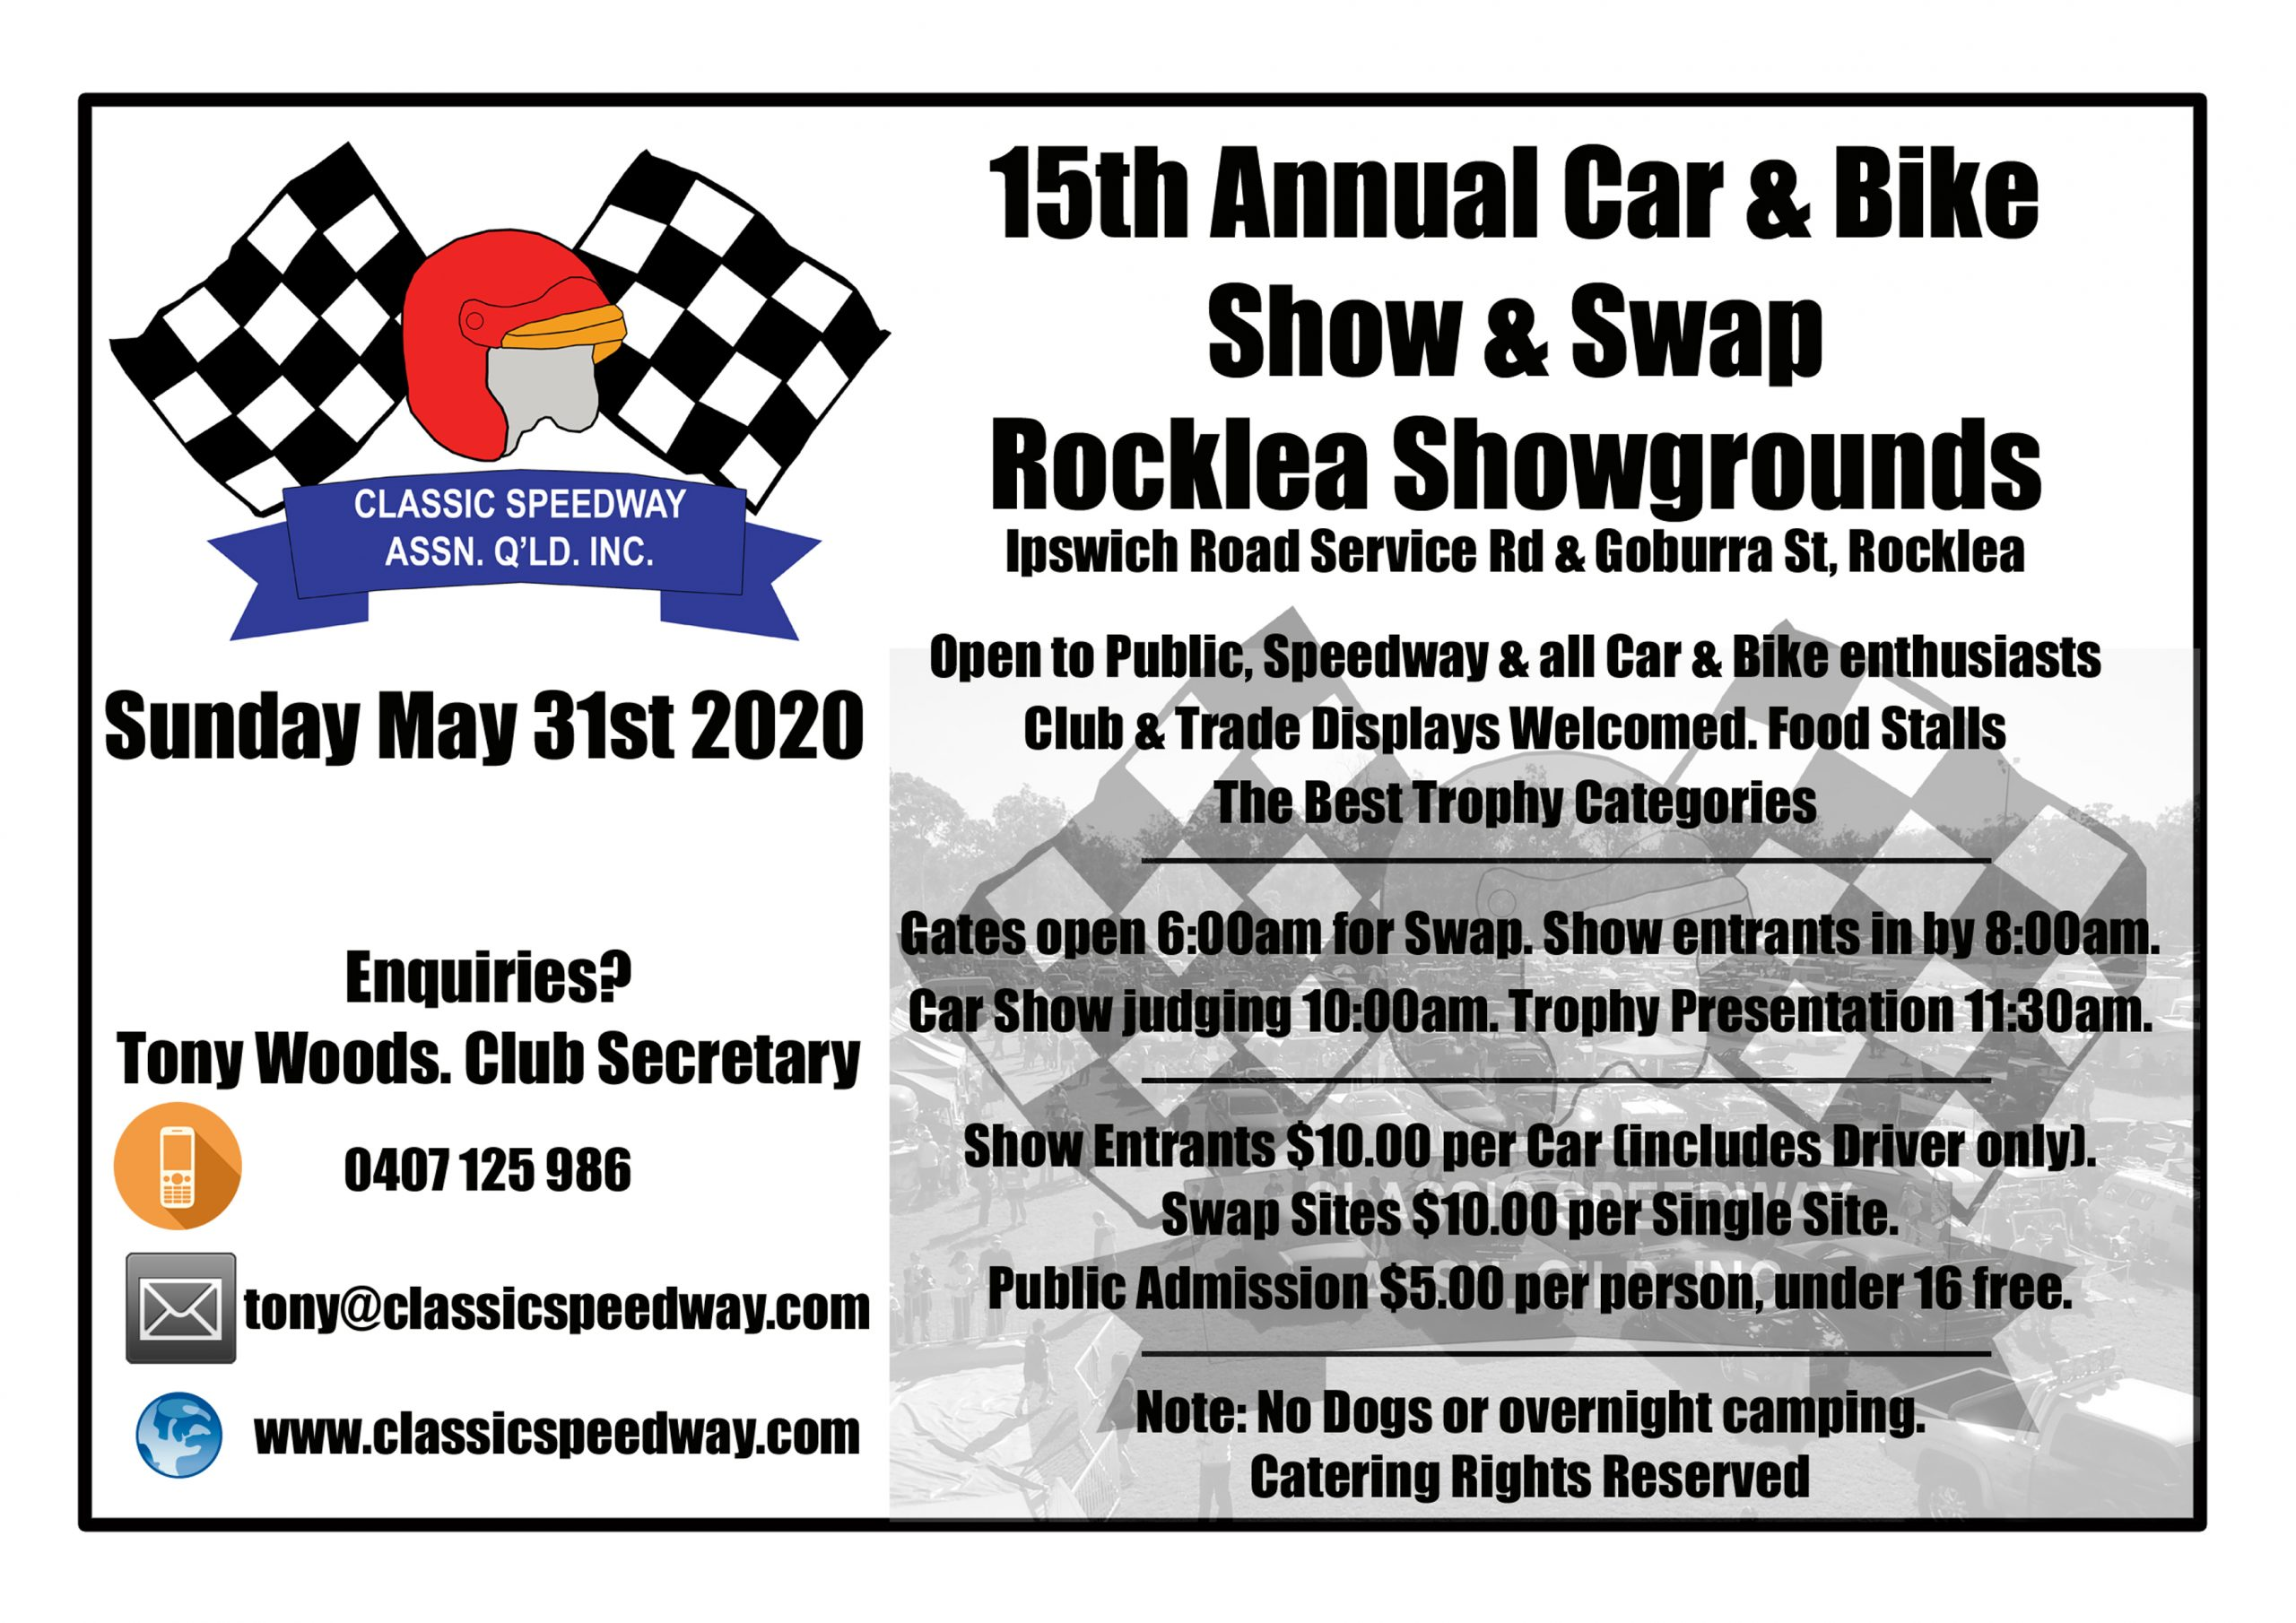 CSAQ 15th Annual Car/Bike Show & Swap @ Rocklea Showgrounds - Ipswich Service Rd and Goburra St Rocklea